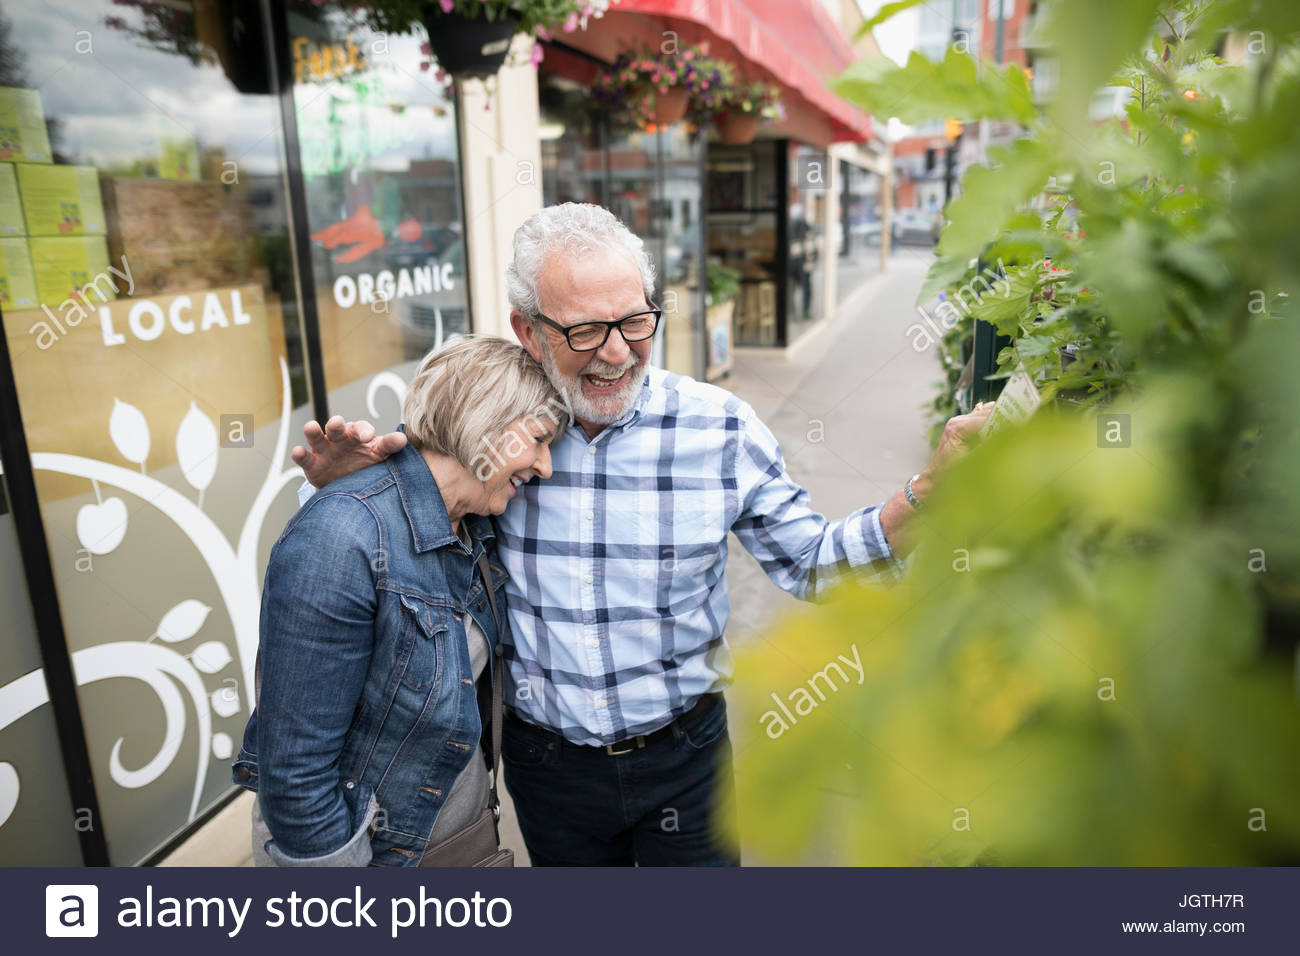 Rire, romantic couple shopping des plantes en vitrine urbaine trottoir Photo Stock